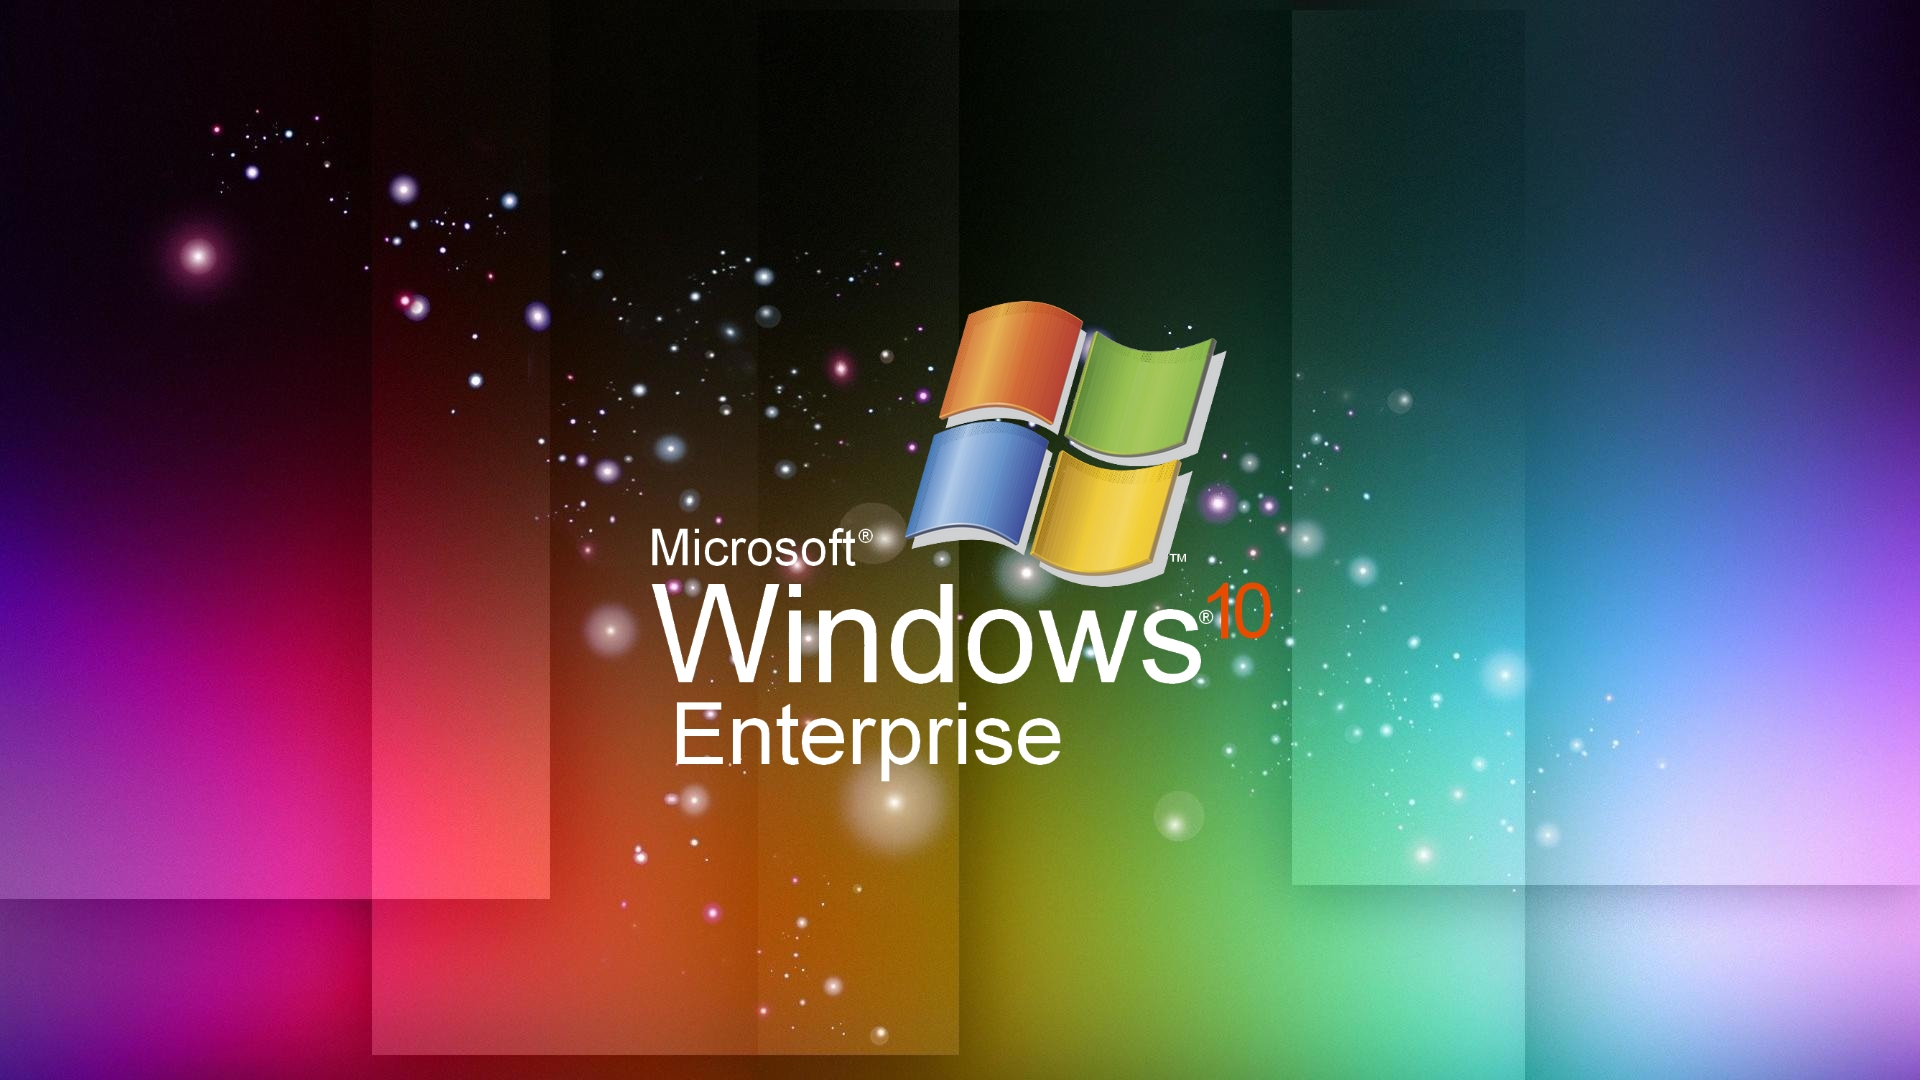 Windows 10 Enterprise Style Xp By Eric02370 On Deviantart